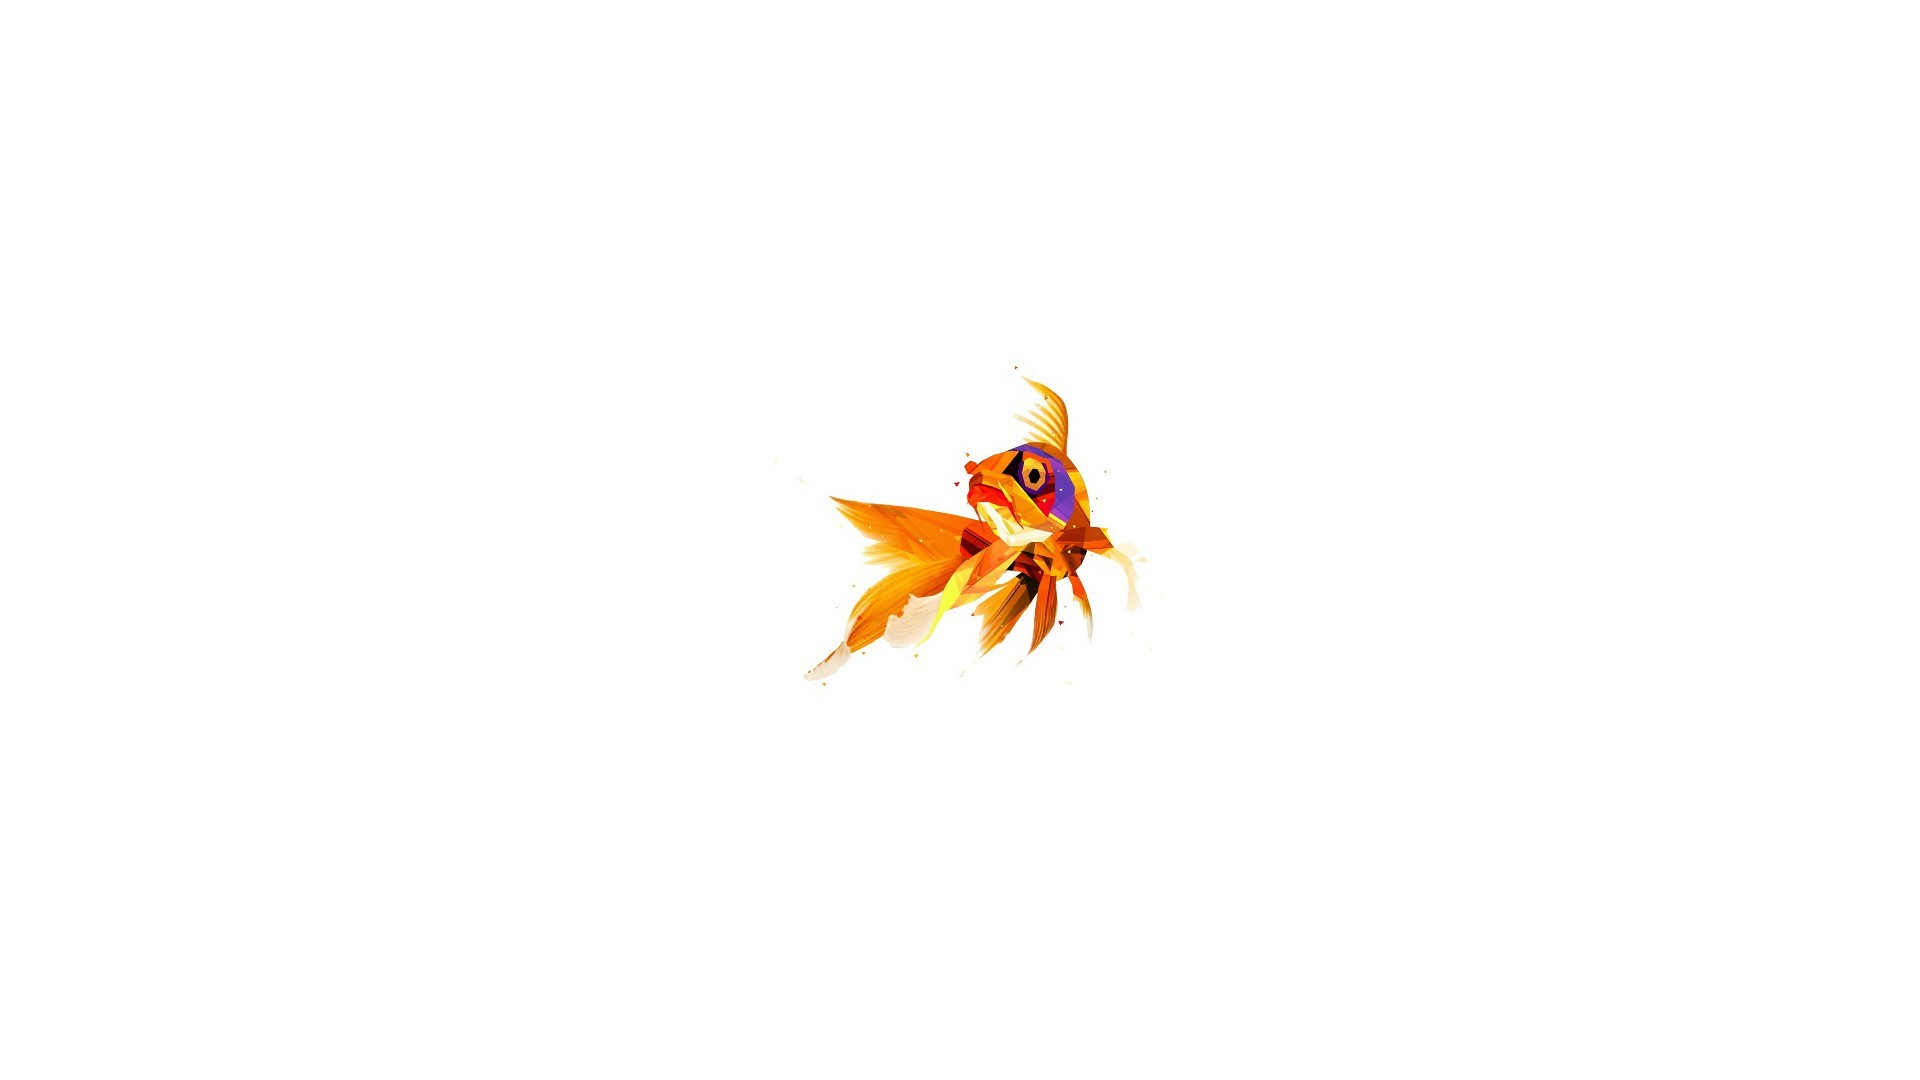 3d Wallpaper For Laptop Full Screen Digital Art Minimalism Animals Low Poly Gold Fish